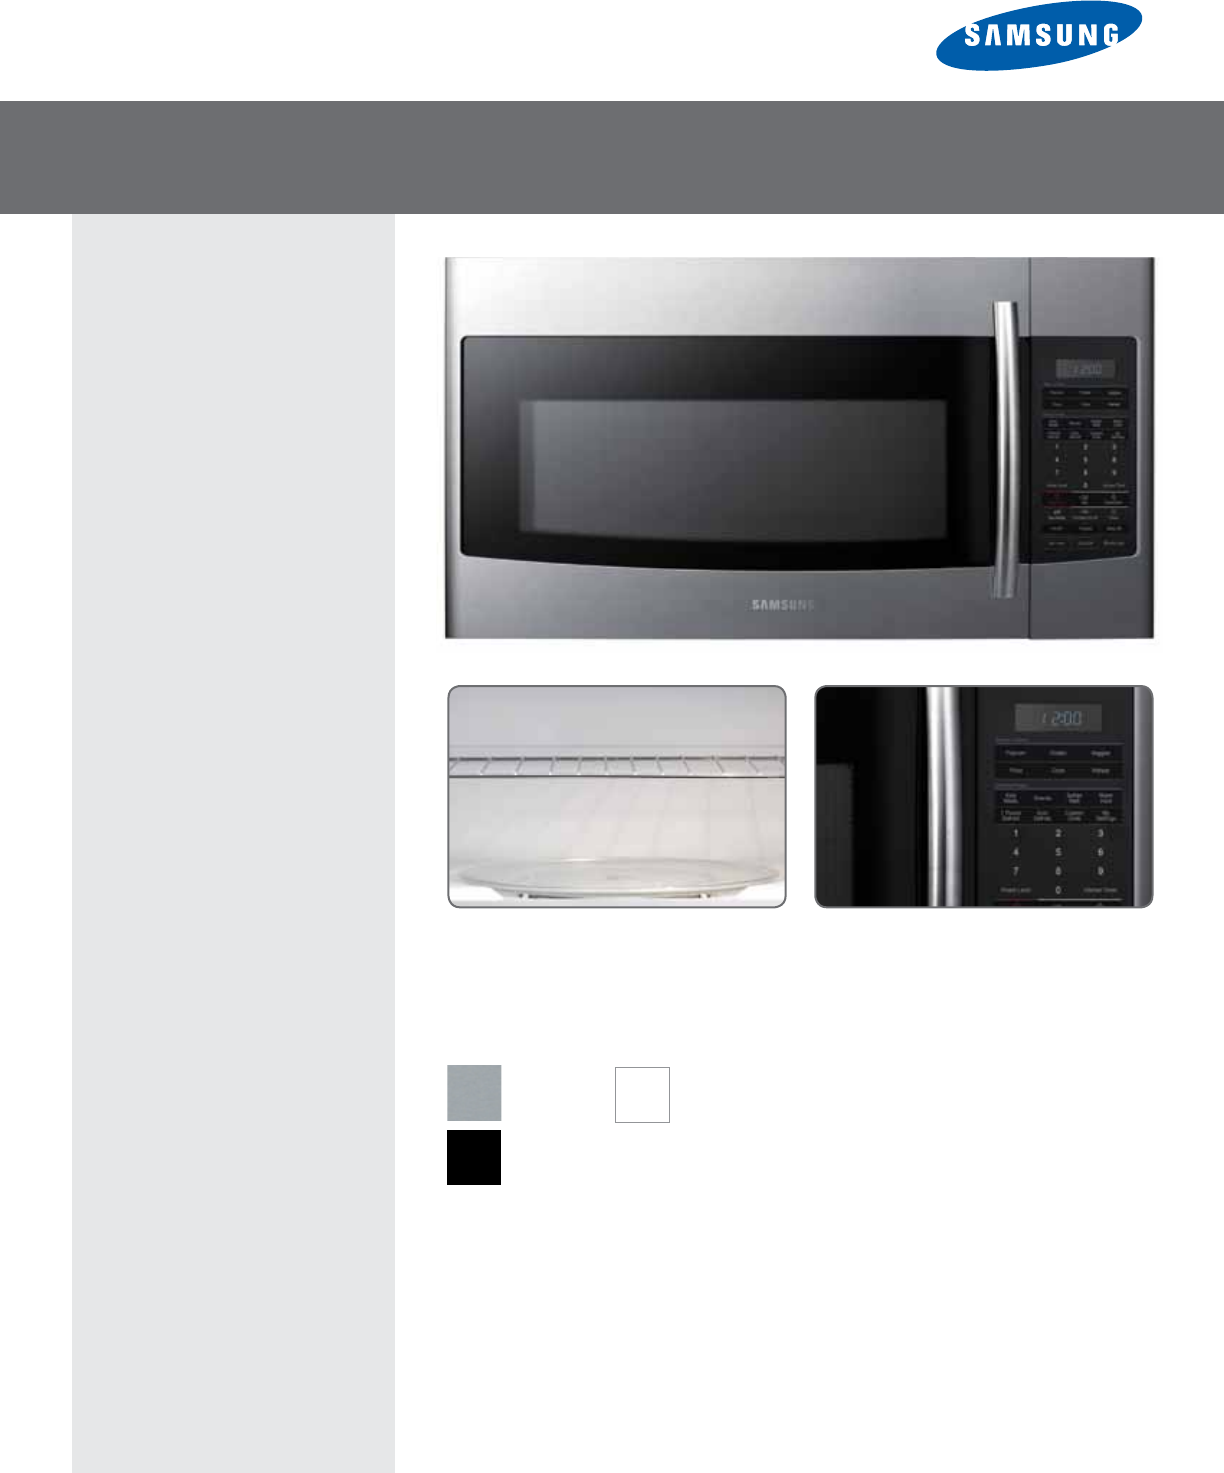 samsung microwave oven smh1816s user guide manualsonline com rh kitchen manualsonline com samsung microwave smh1816s installation guide samsung smh1816s mounting instructions